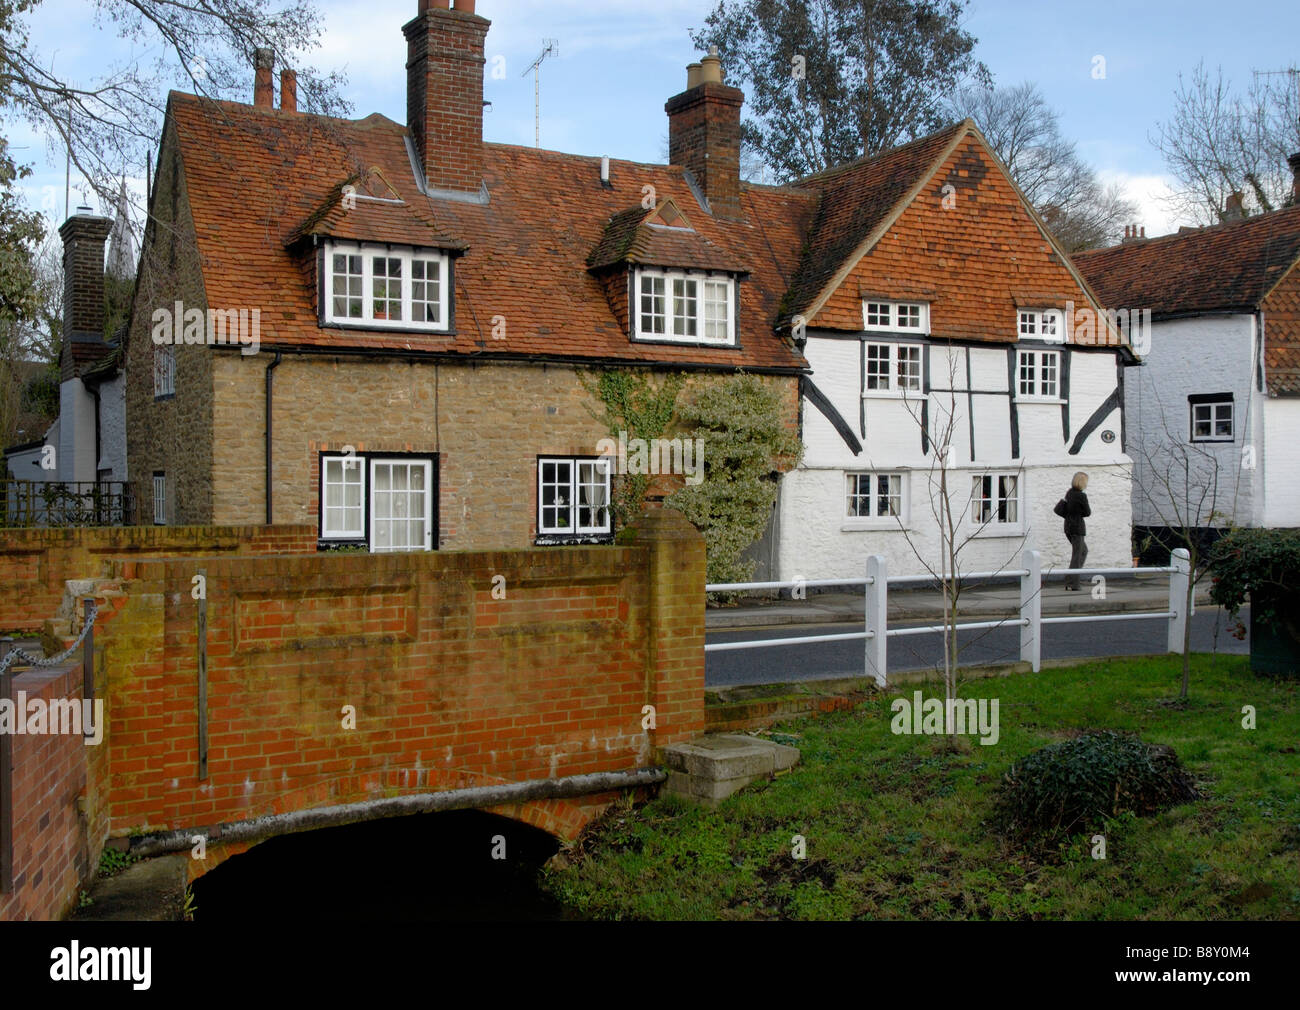 16th and 17th century cottages, bridge over River Ock and young woman walking, Mill Lane, Godalming, Surrey, England - Stock Image